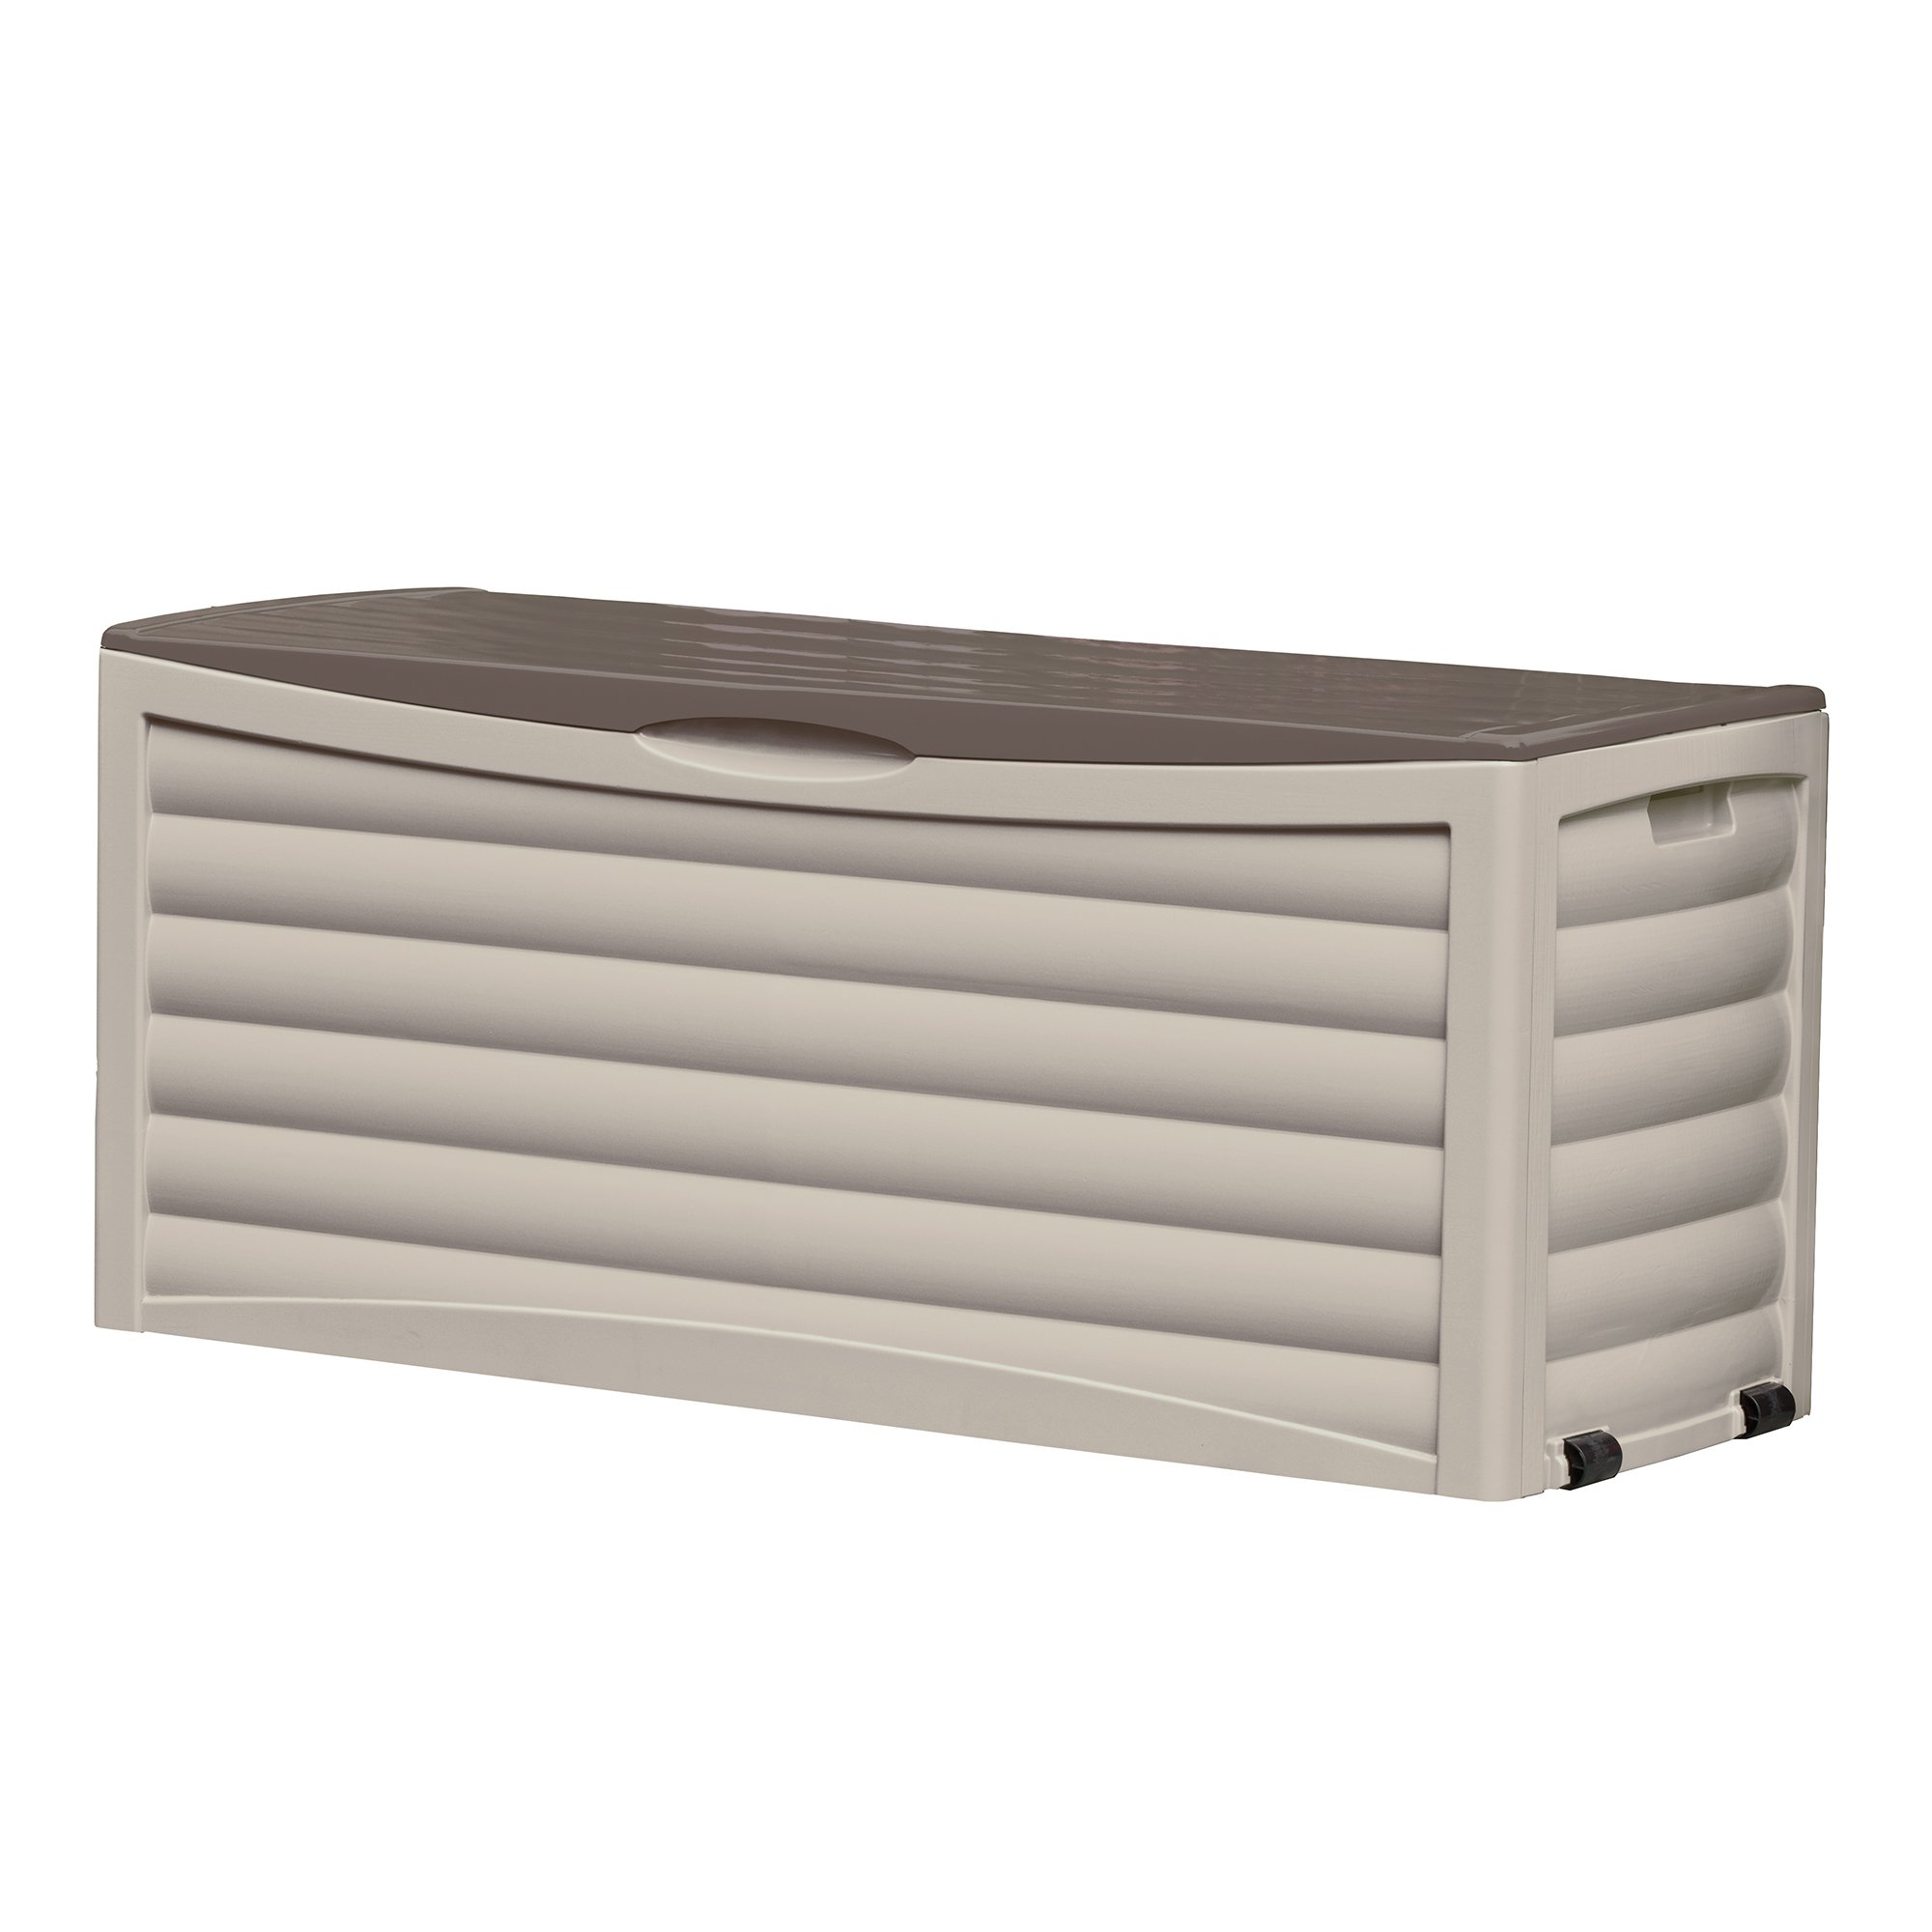 Suncast DB10300 Patio Storage Box